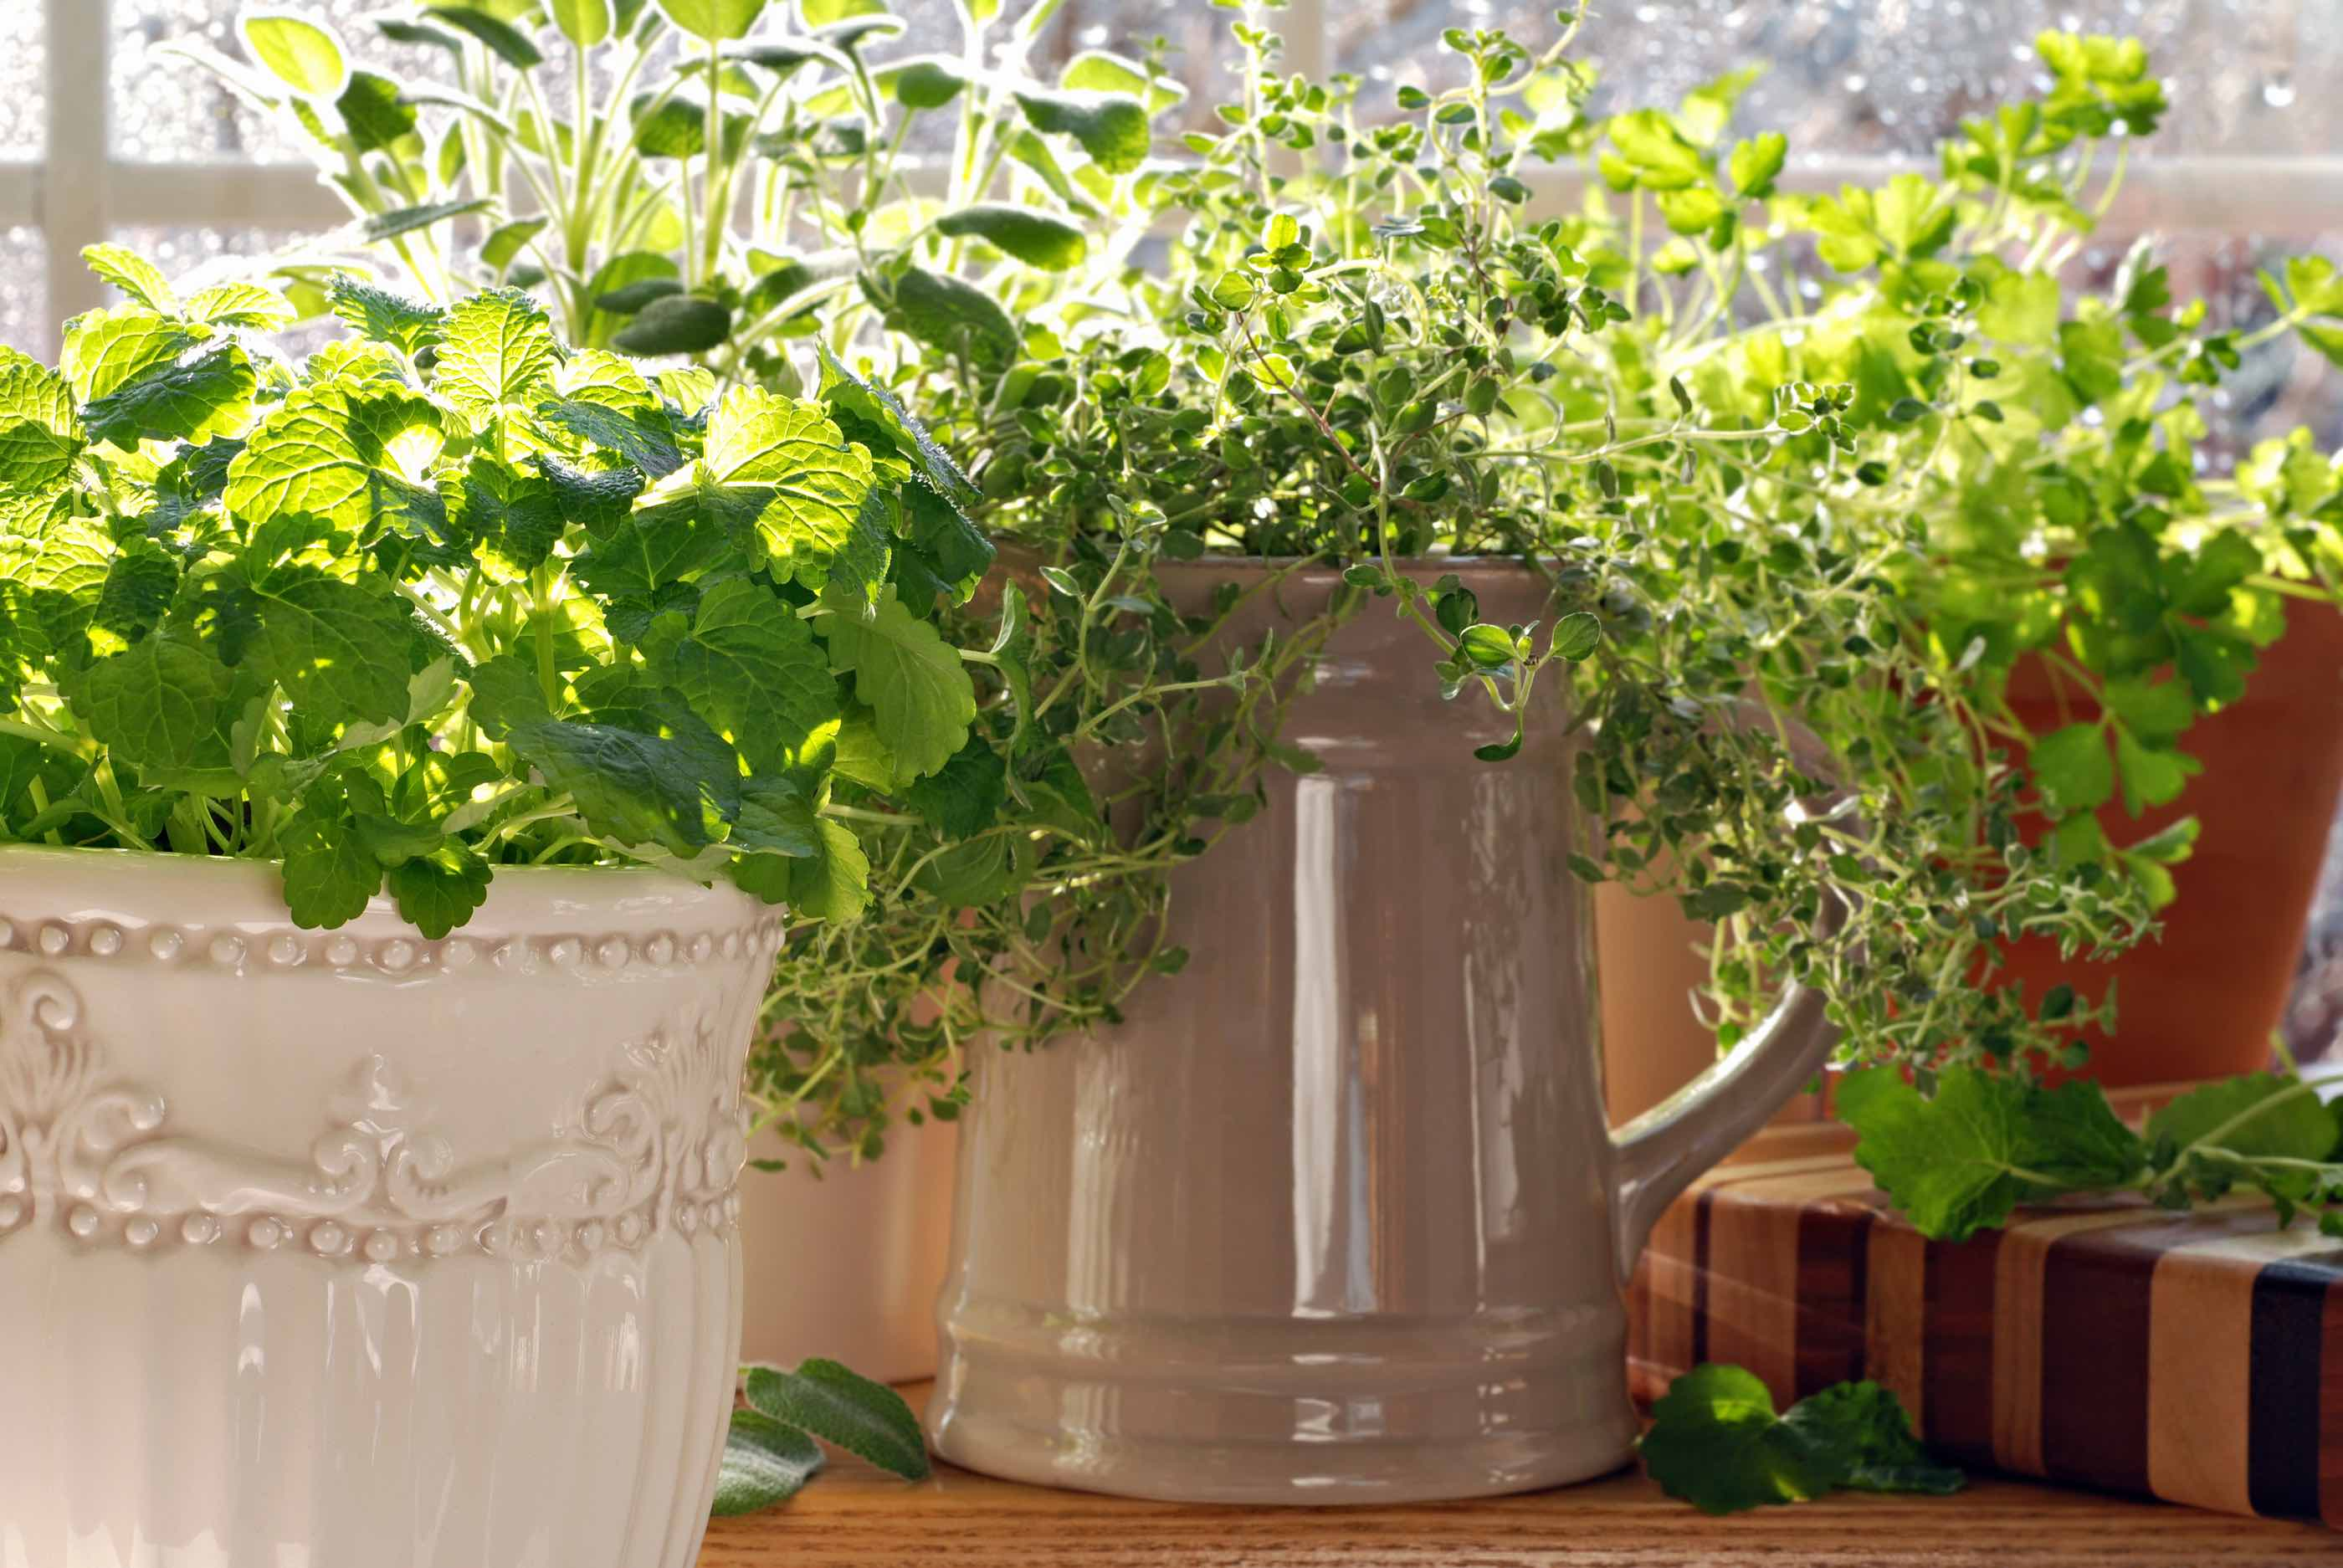 Best Pots For Indoor Herbs How To Get The Most Mileage Out Of Your Herb Garden